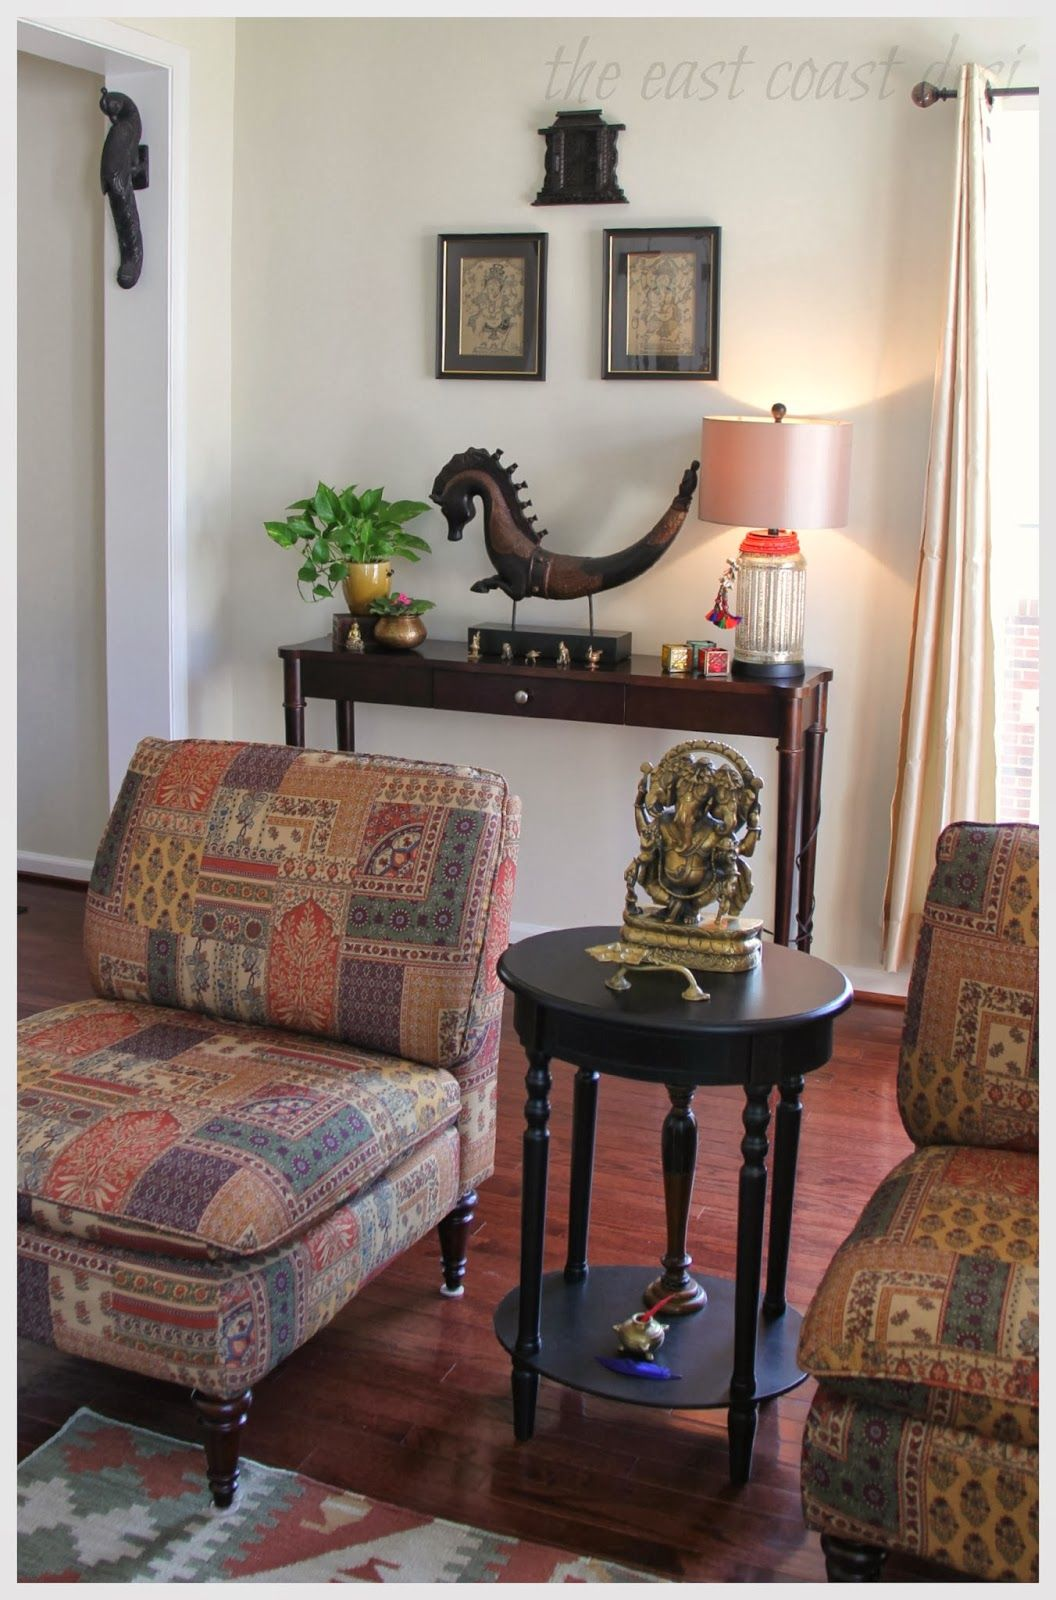 Indian Seating Designs Living Room: Horse+003.jpg 1,056×1,600 Pixels